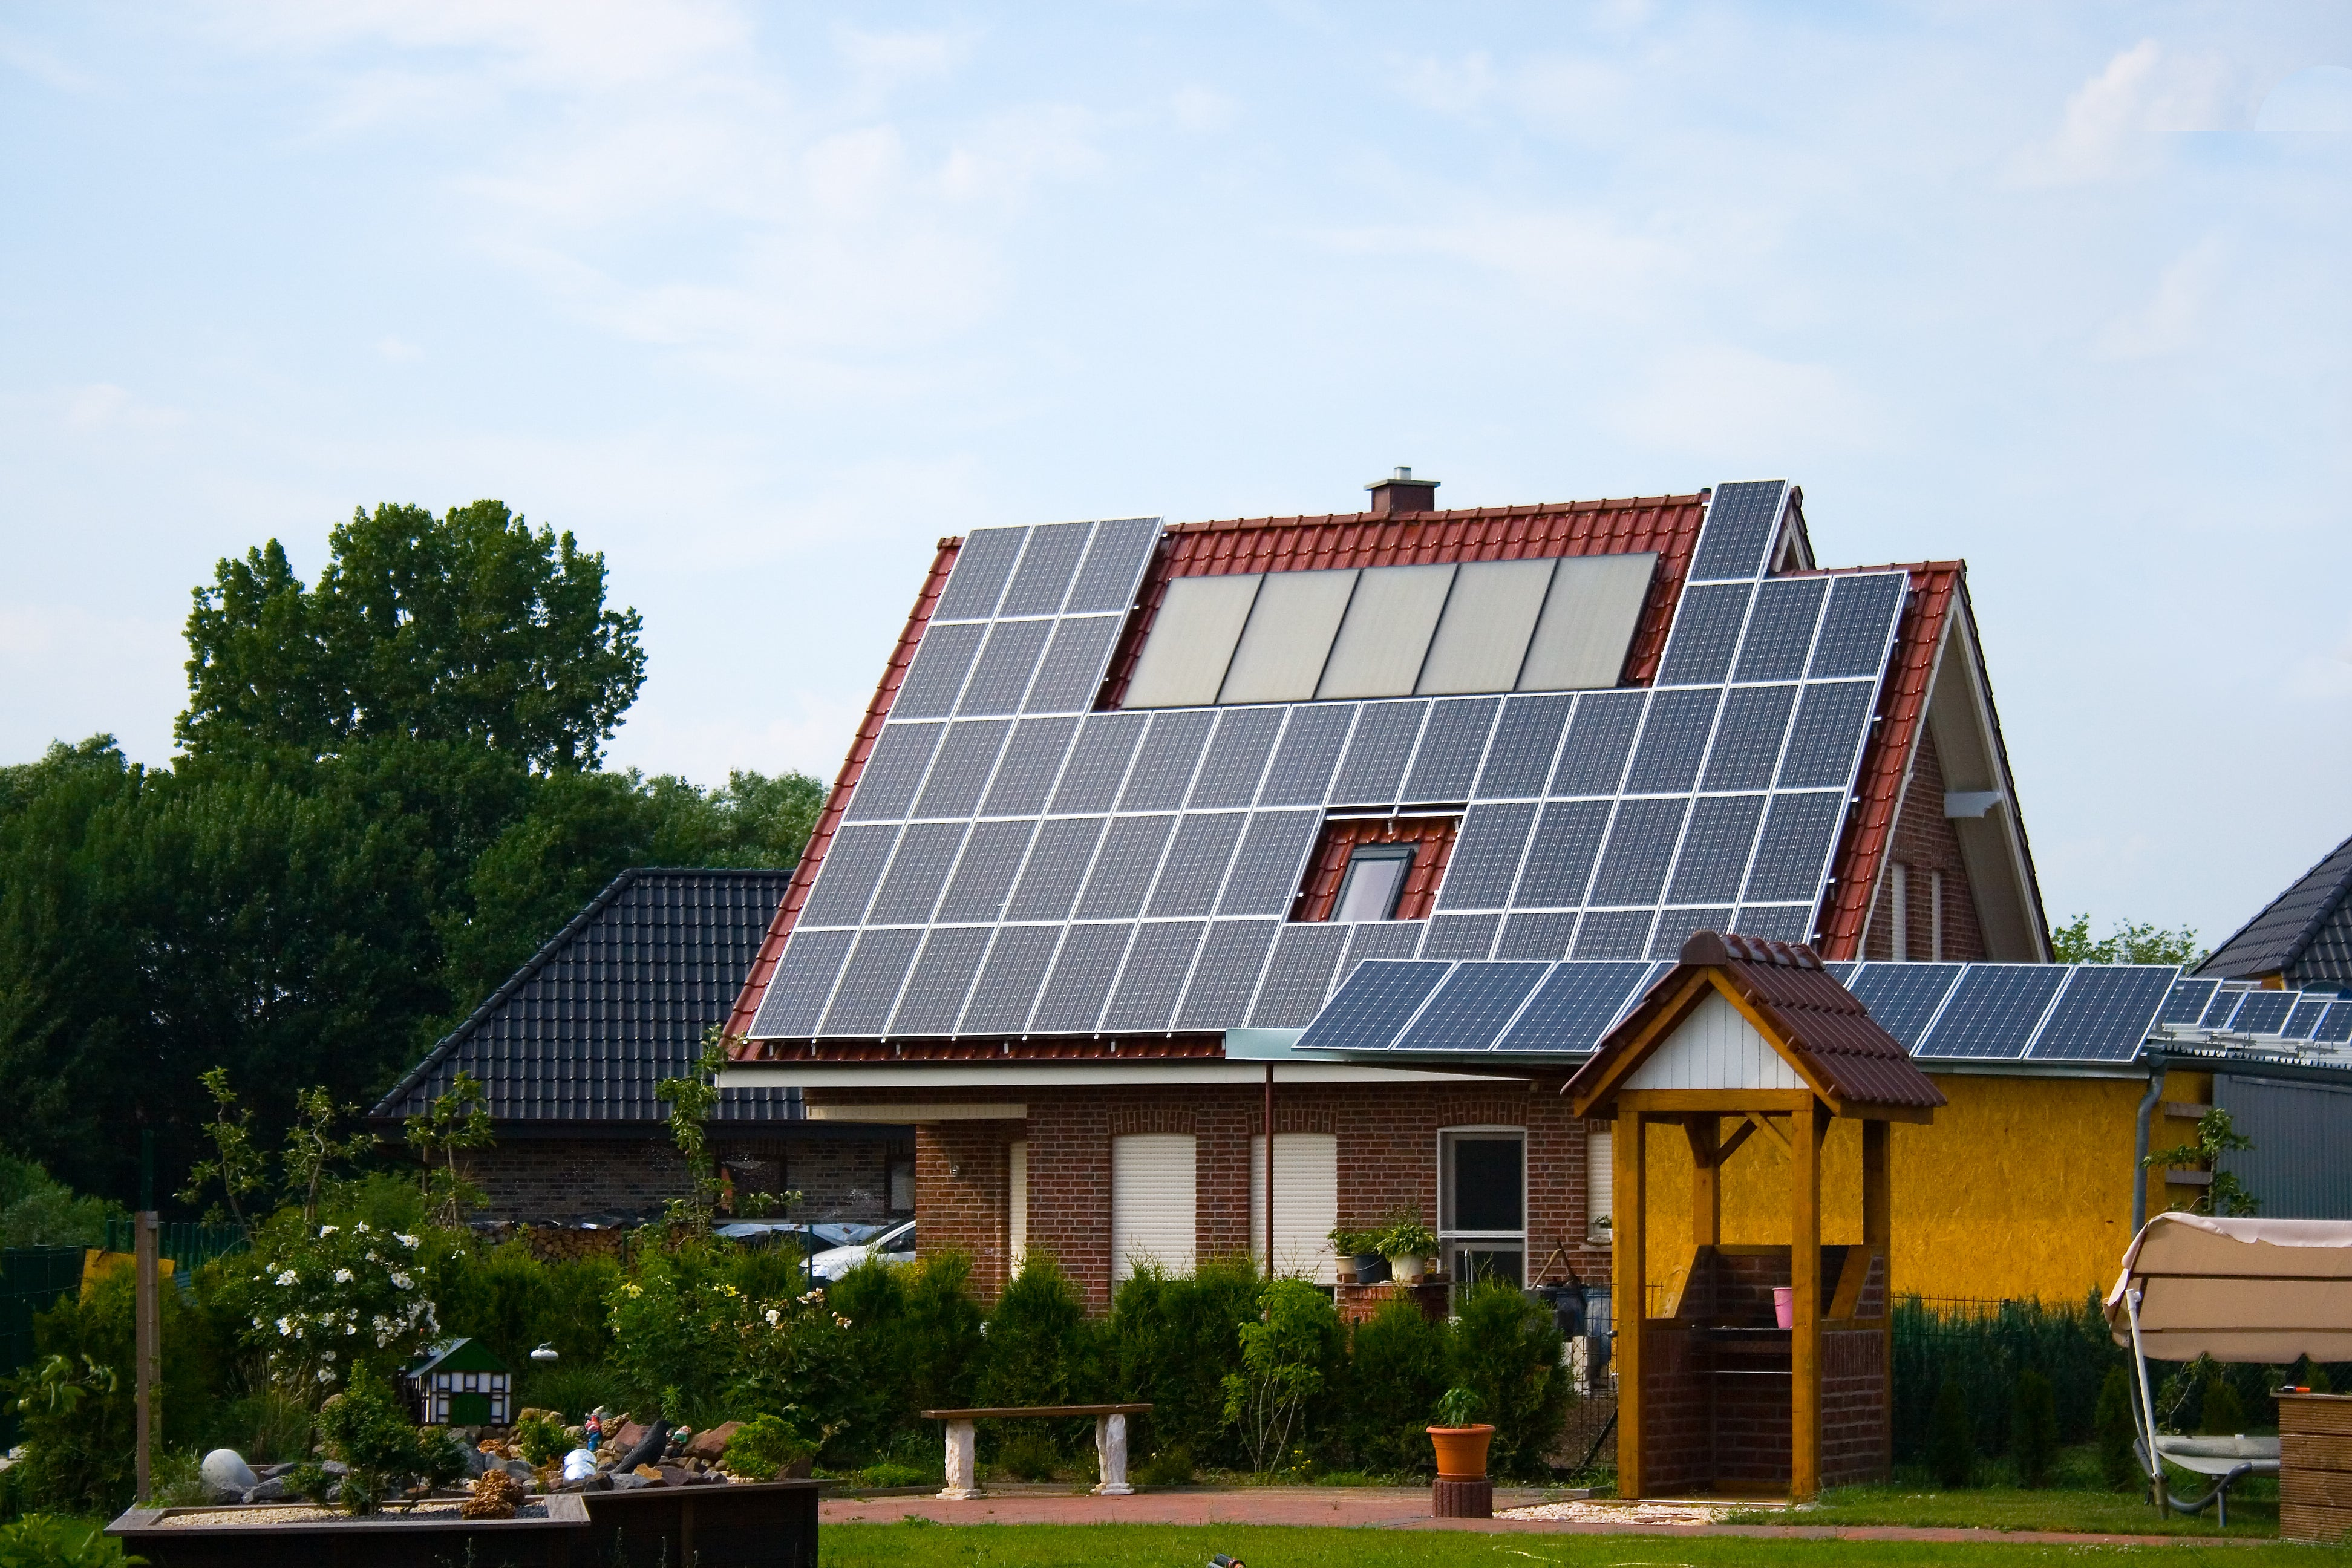 Home solar power systems offer great returns when analyzed for Solar powered home designs